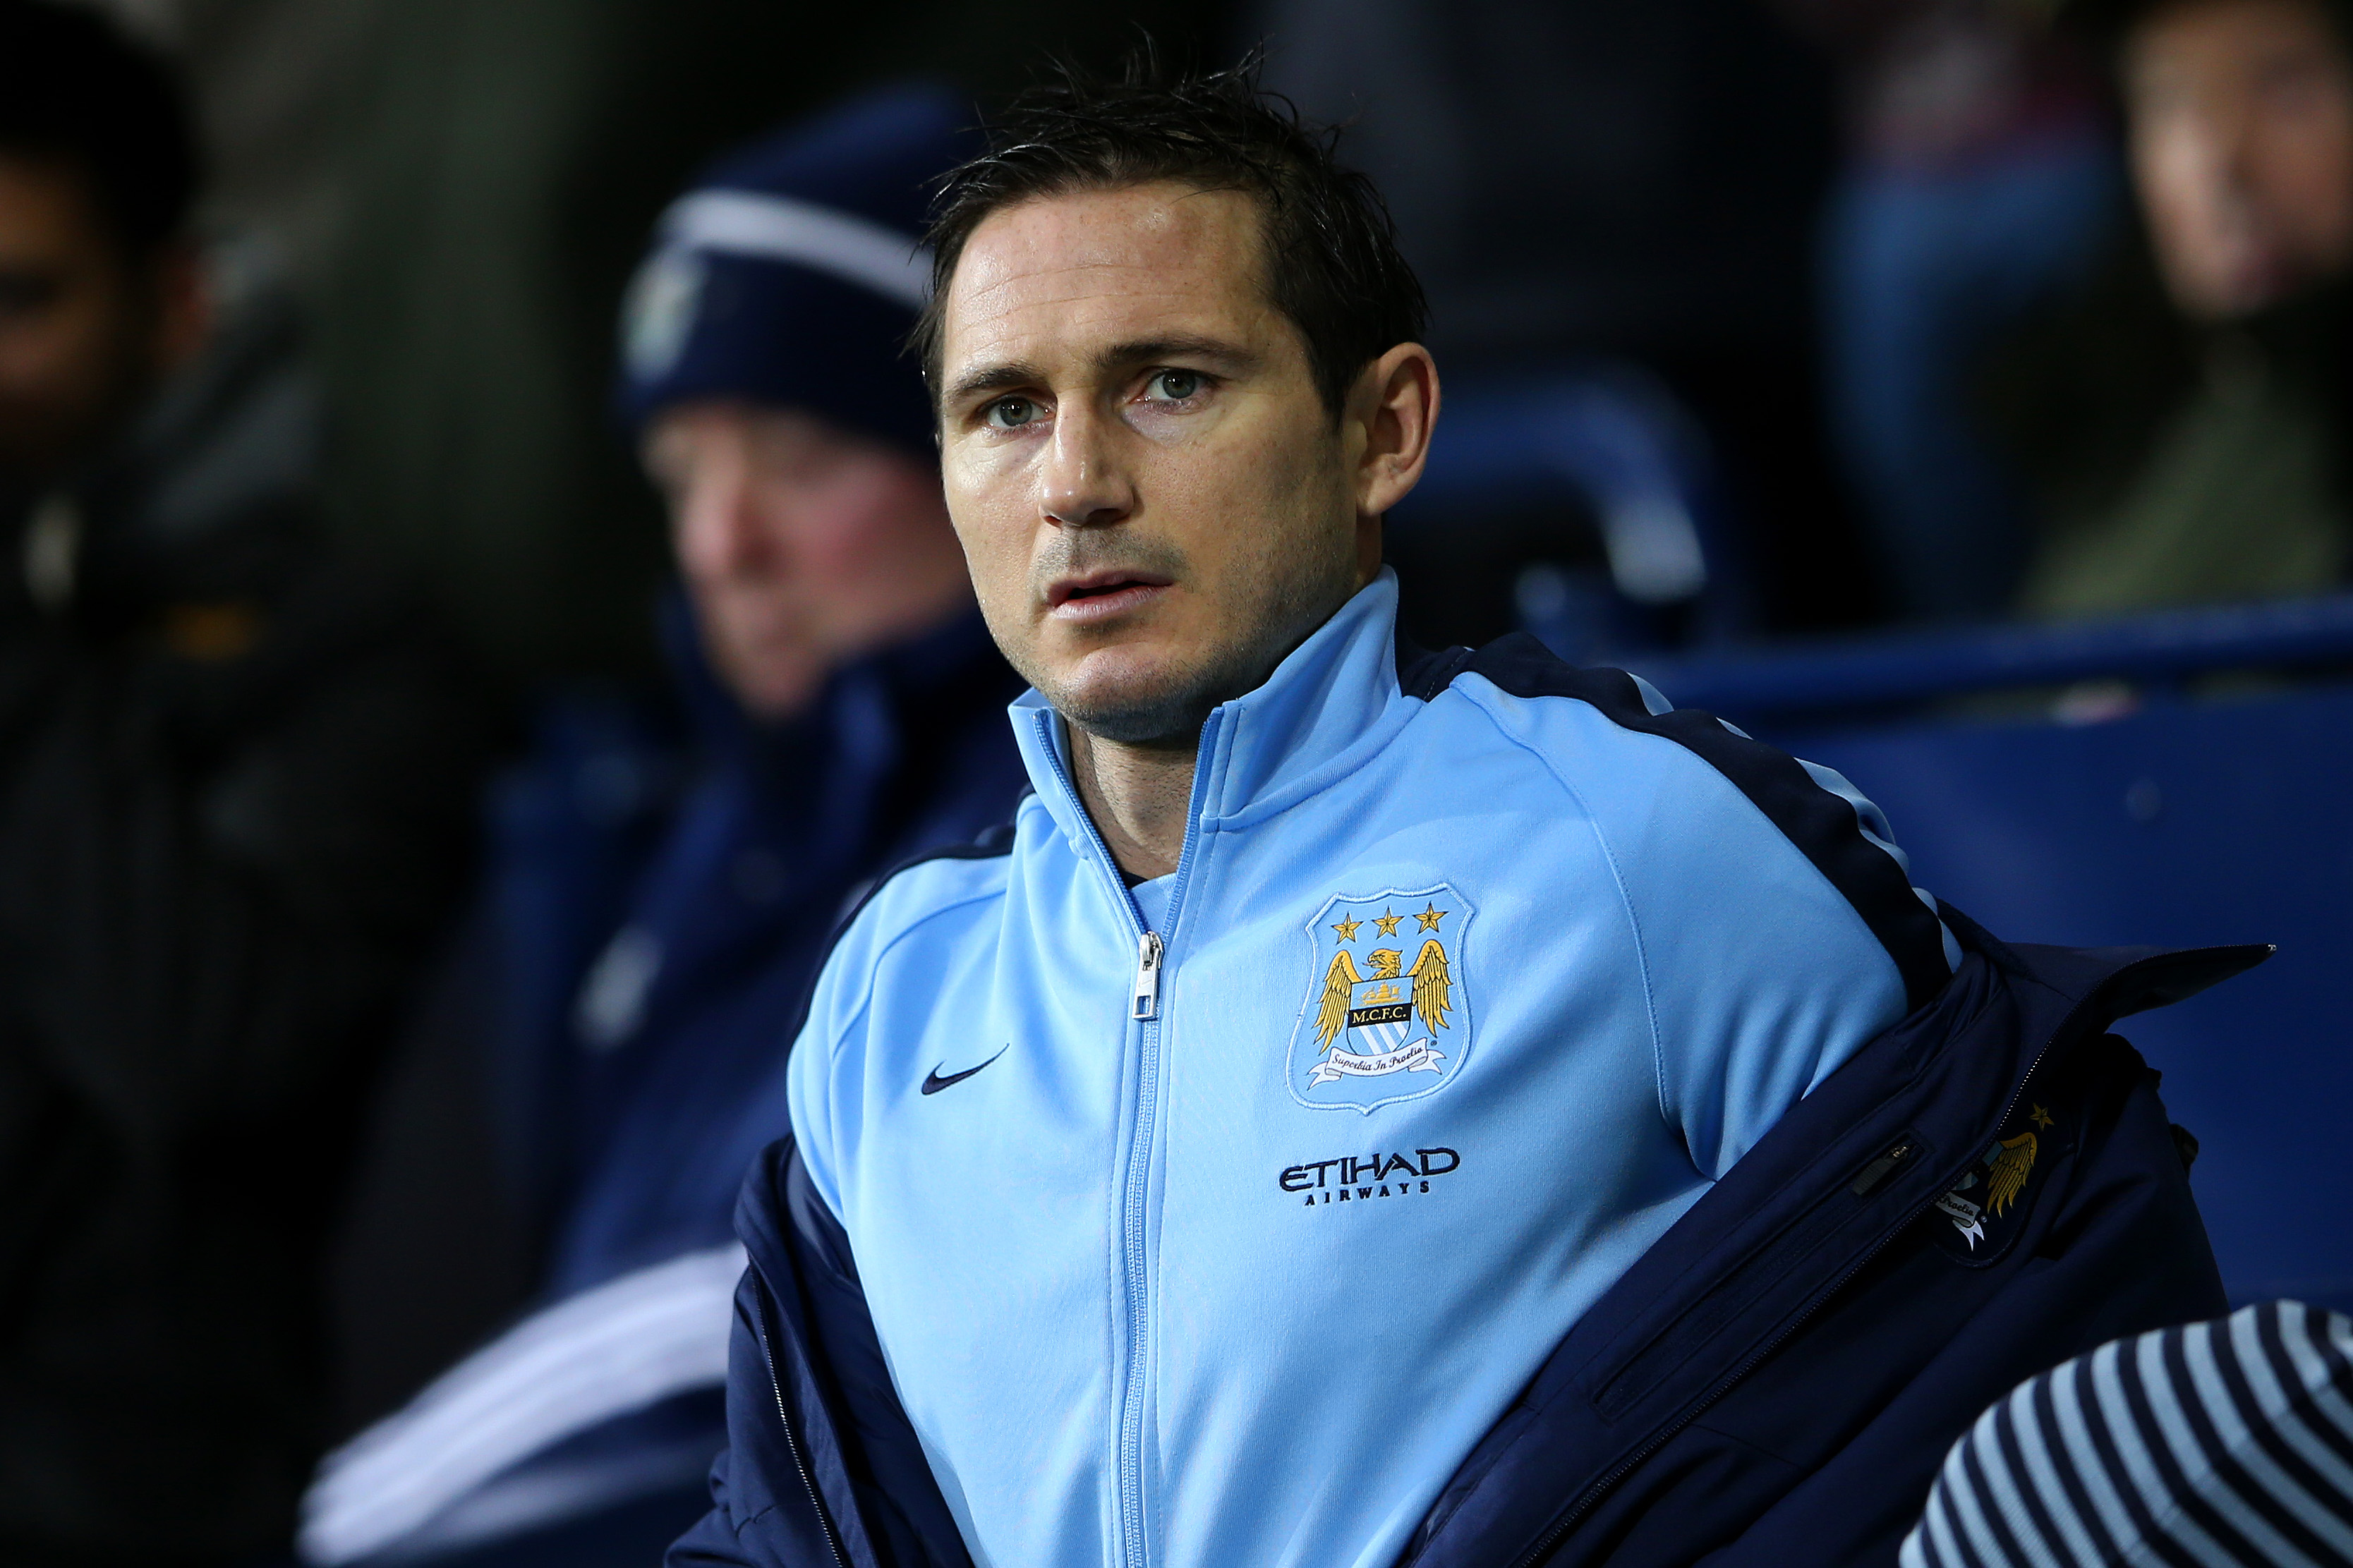 Frank Lampard to stay at Manchester City through end of season